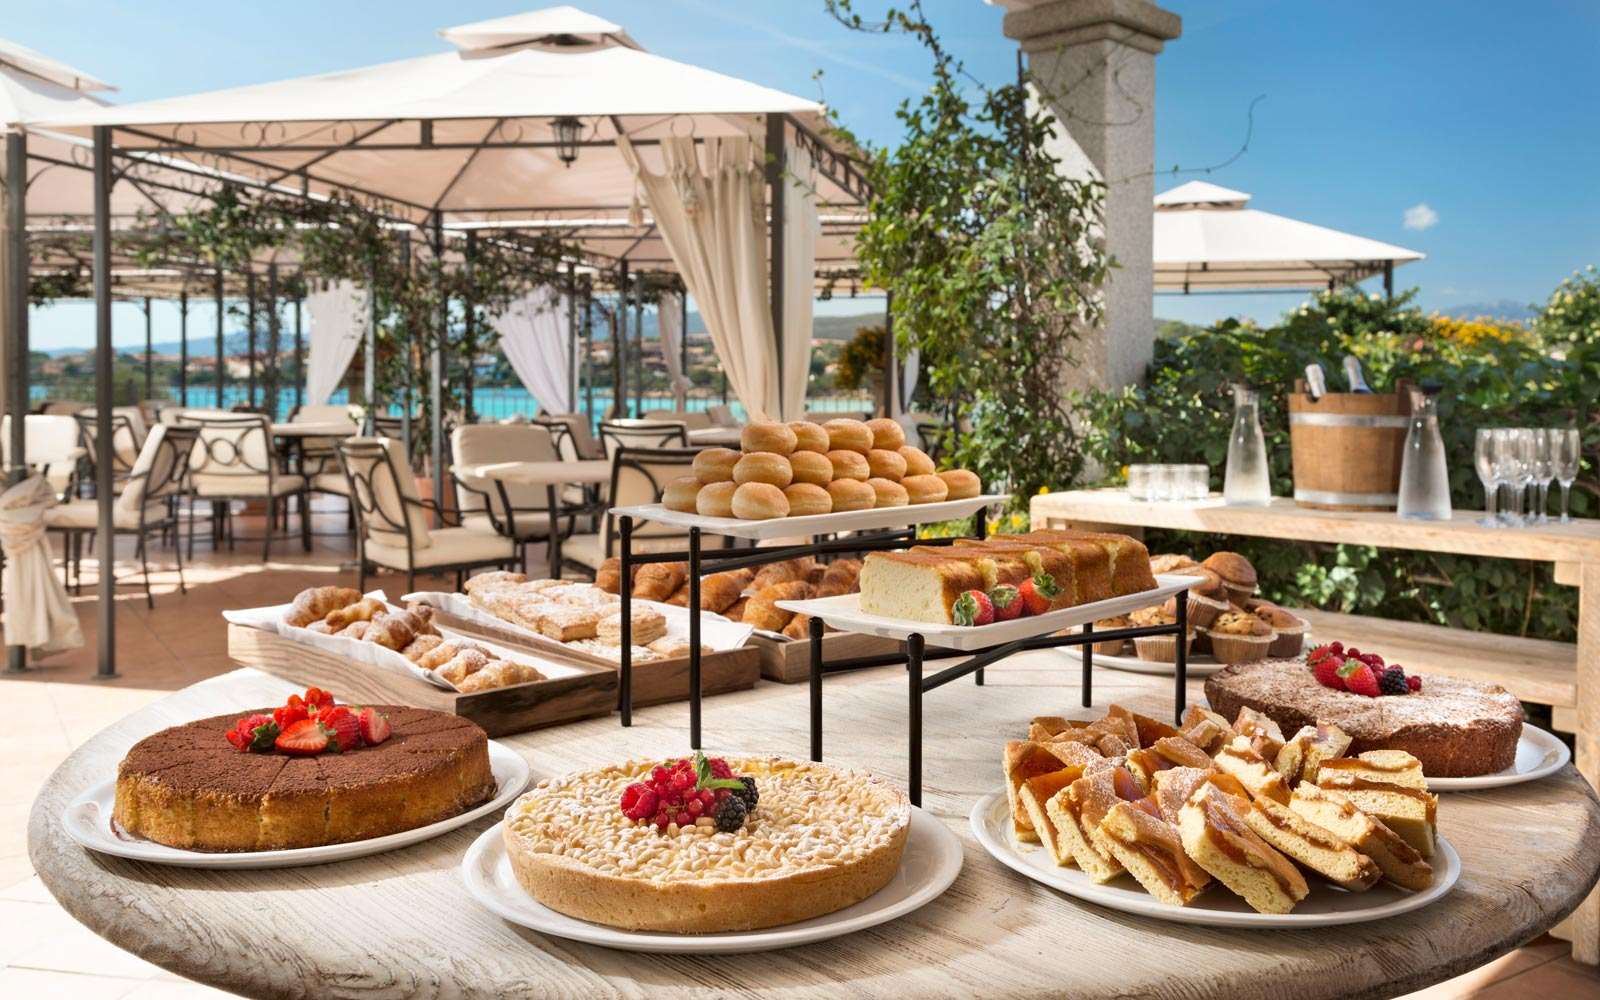 Breakfast at Gabbiano Azzurro Hotel & Suites